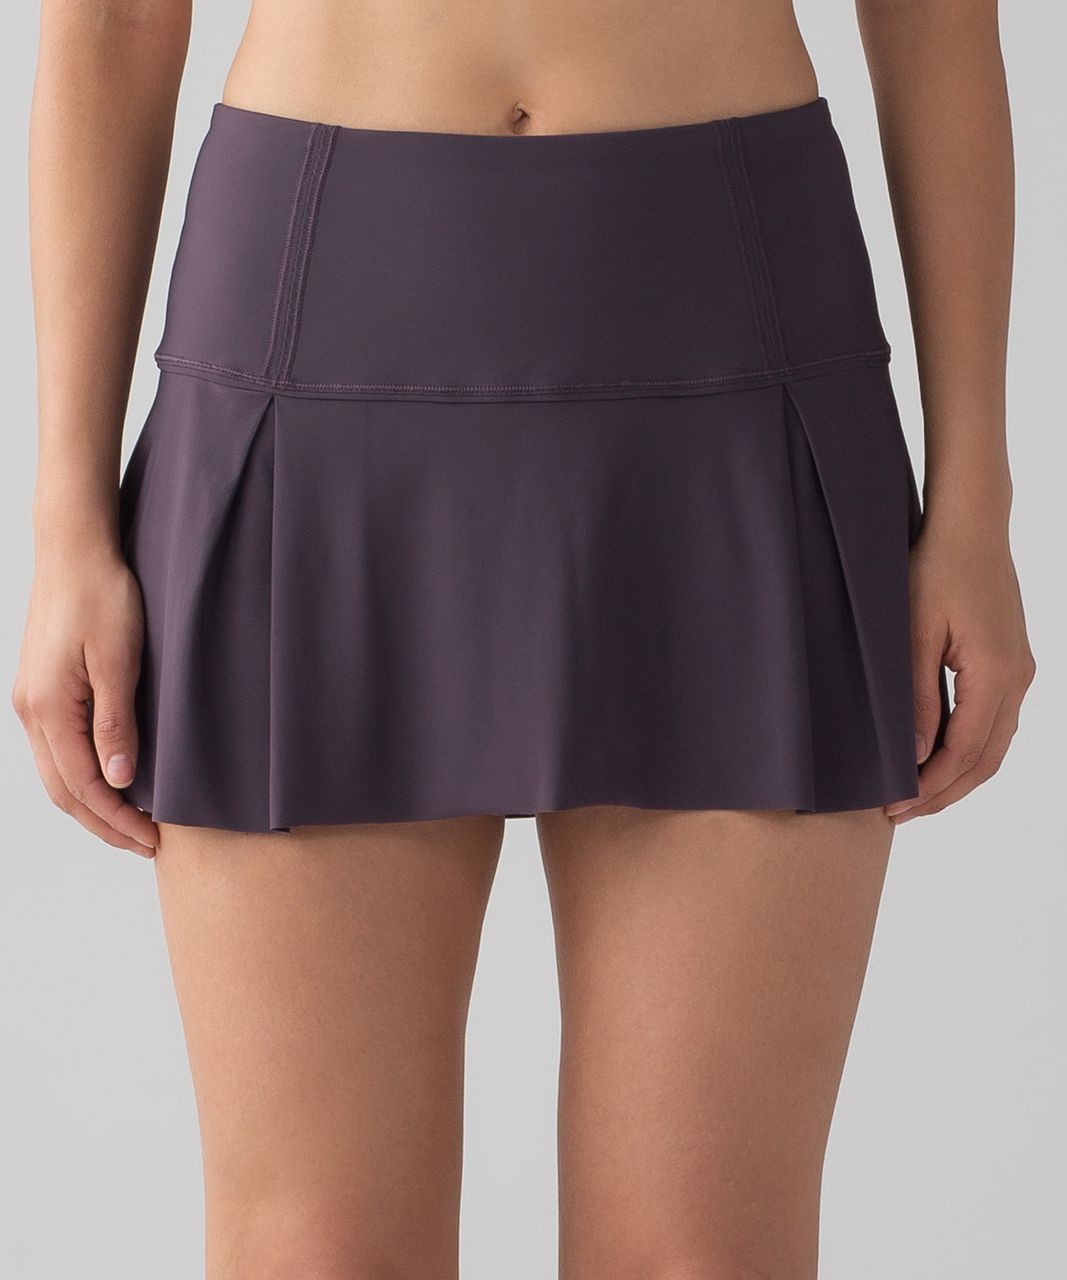 Release Date: 4/2017. Original Price: $68. Color: black currant. We designed this breezy skirt with stretchy built-in shorts so you can go from the trails to the tennis court without slowing down. Fabric is sweat-wicking and four-way stretch